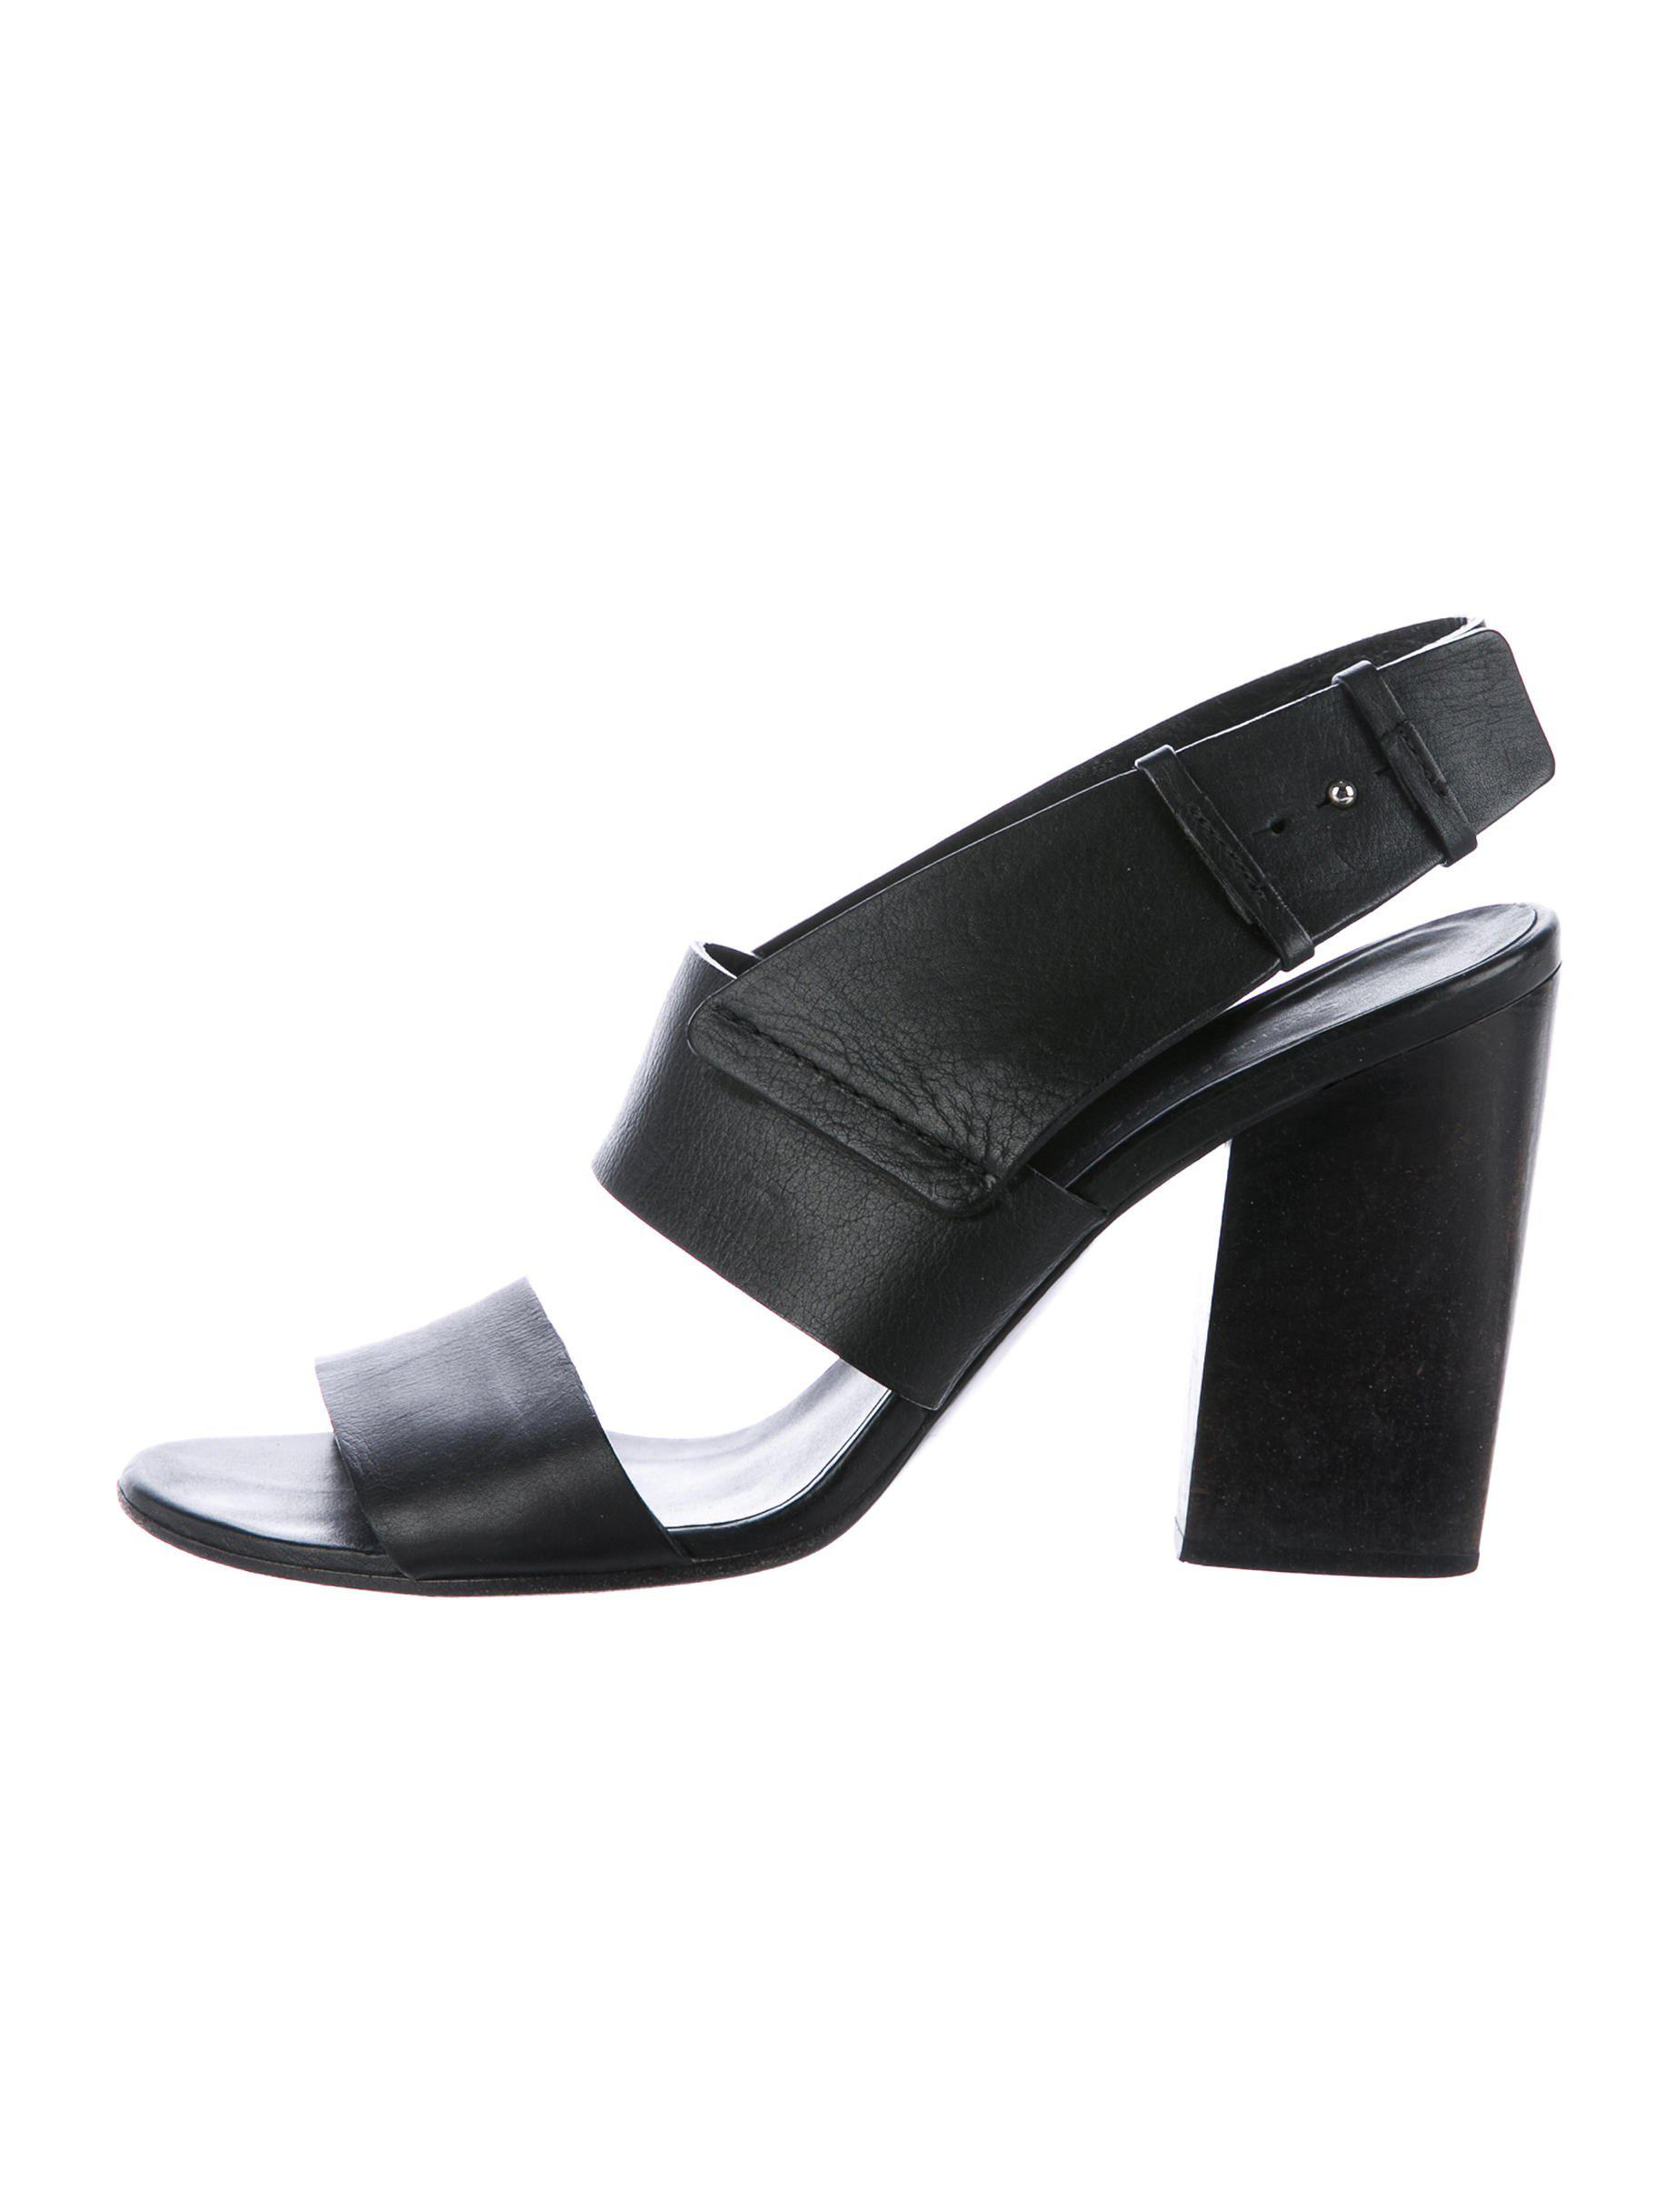 Costume National Leather Crossover Sandals clearance find great outlet lowest price zMgvymDAu